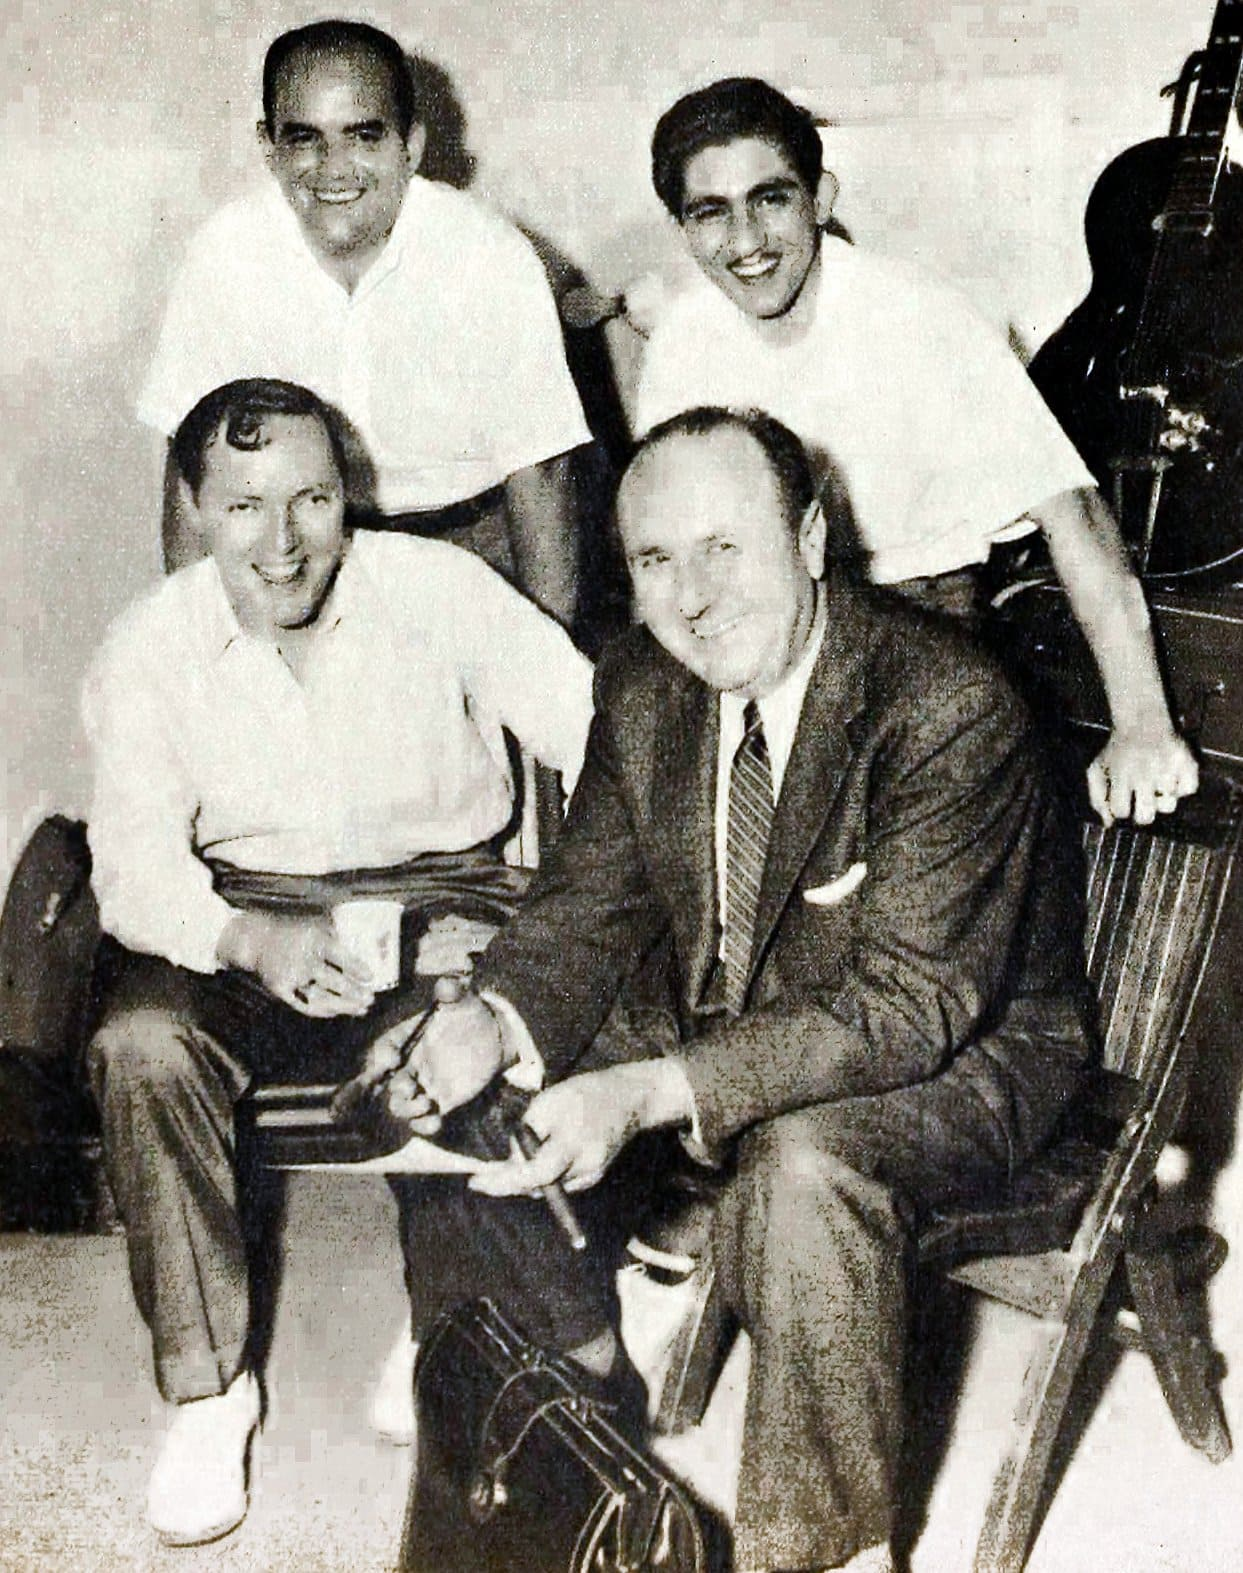 Bill Haley and manager Jim Ferguson